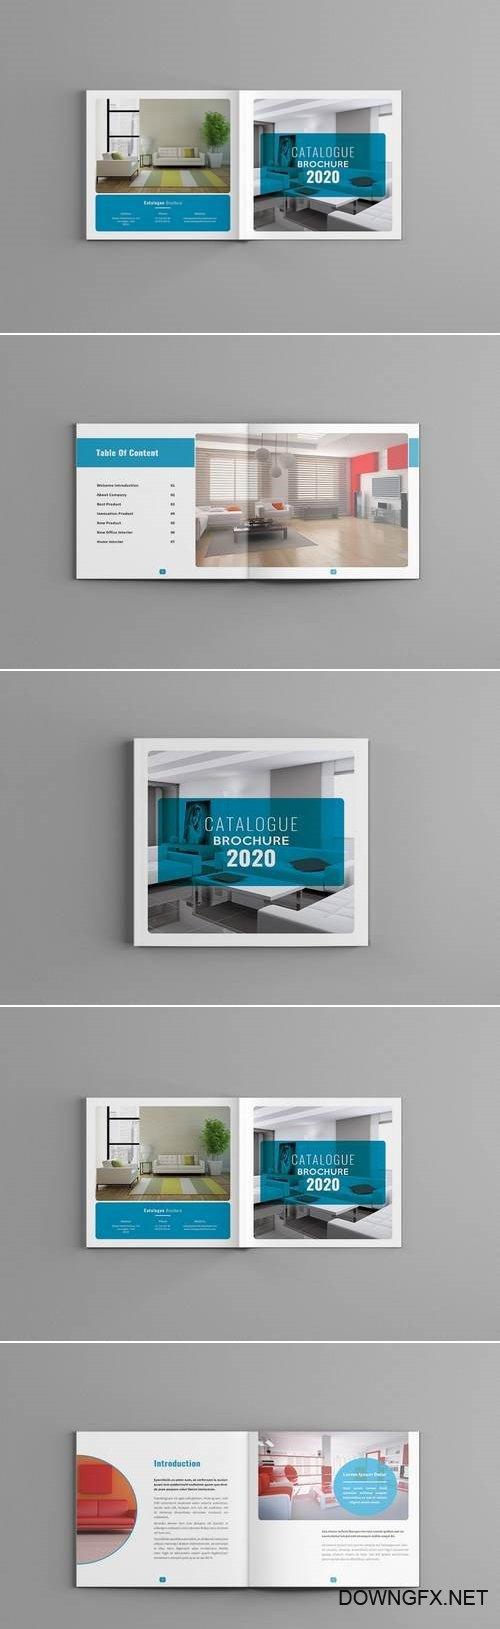 Famella - Square Catalogue Brochure Template